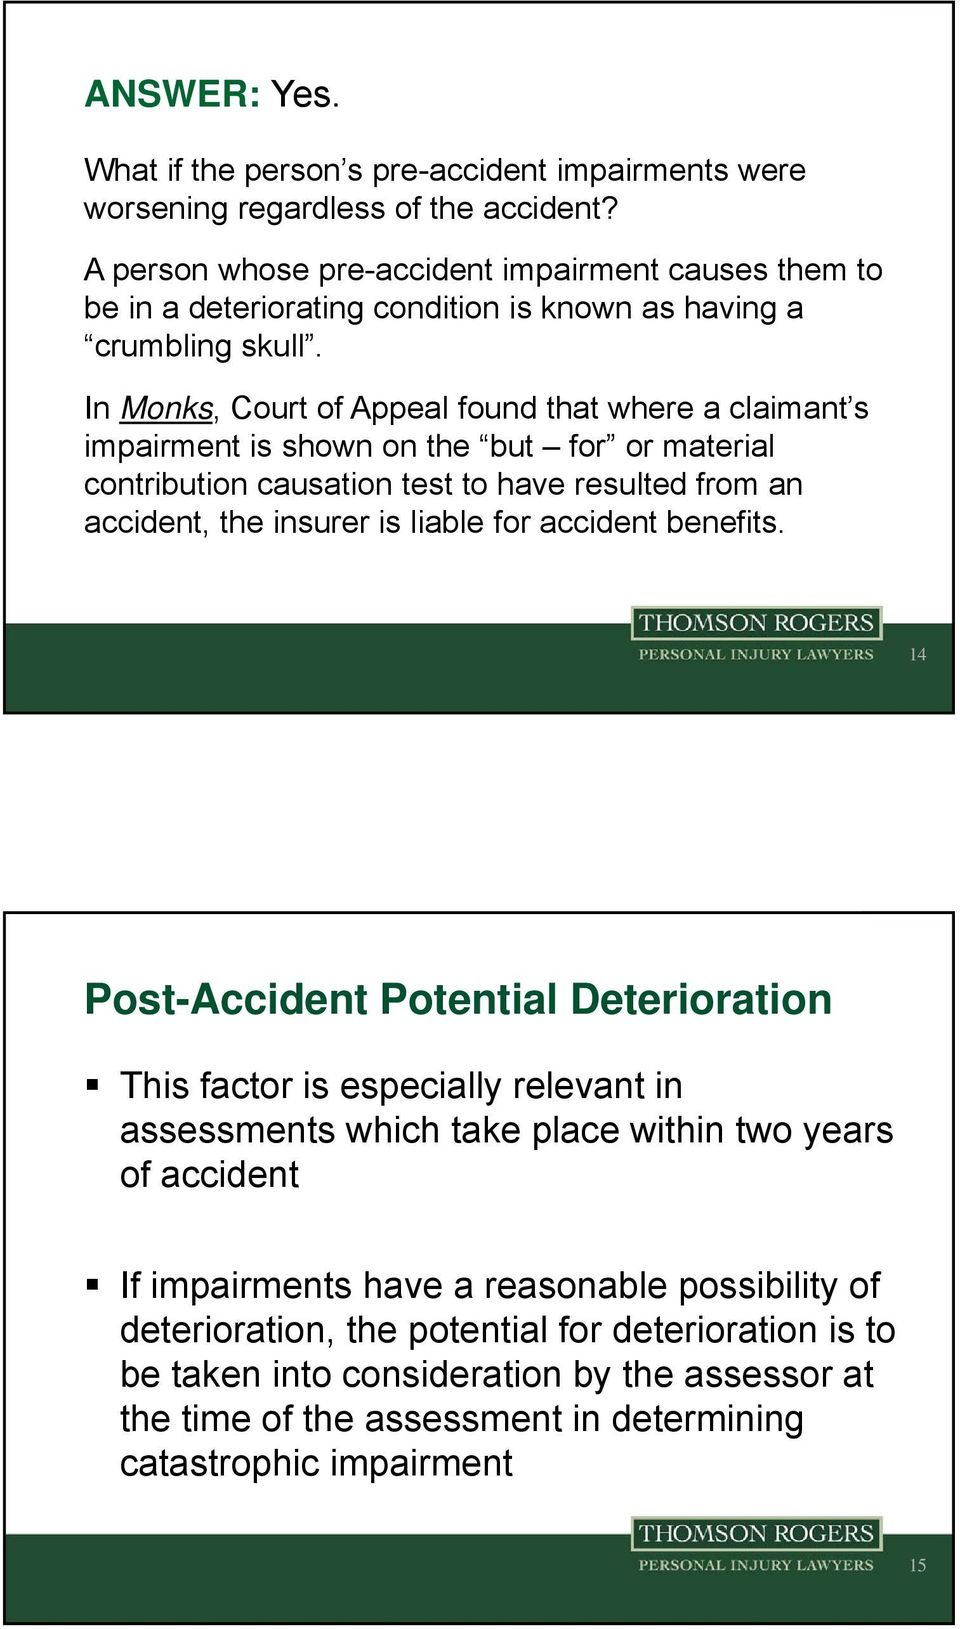 In Monks, Court of Appeal found that where a claimant s impairment is shown on the but for or material contribution causation test to have resulted from an accident, the insurer is liable for